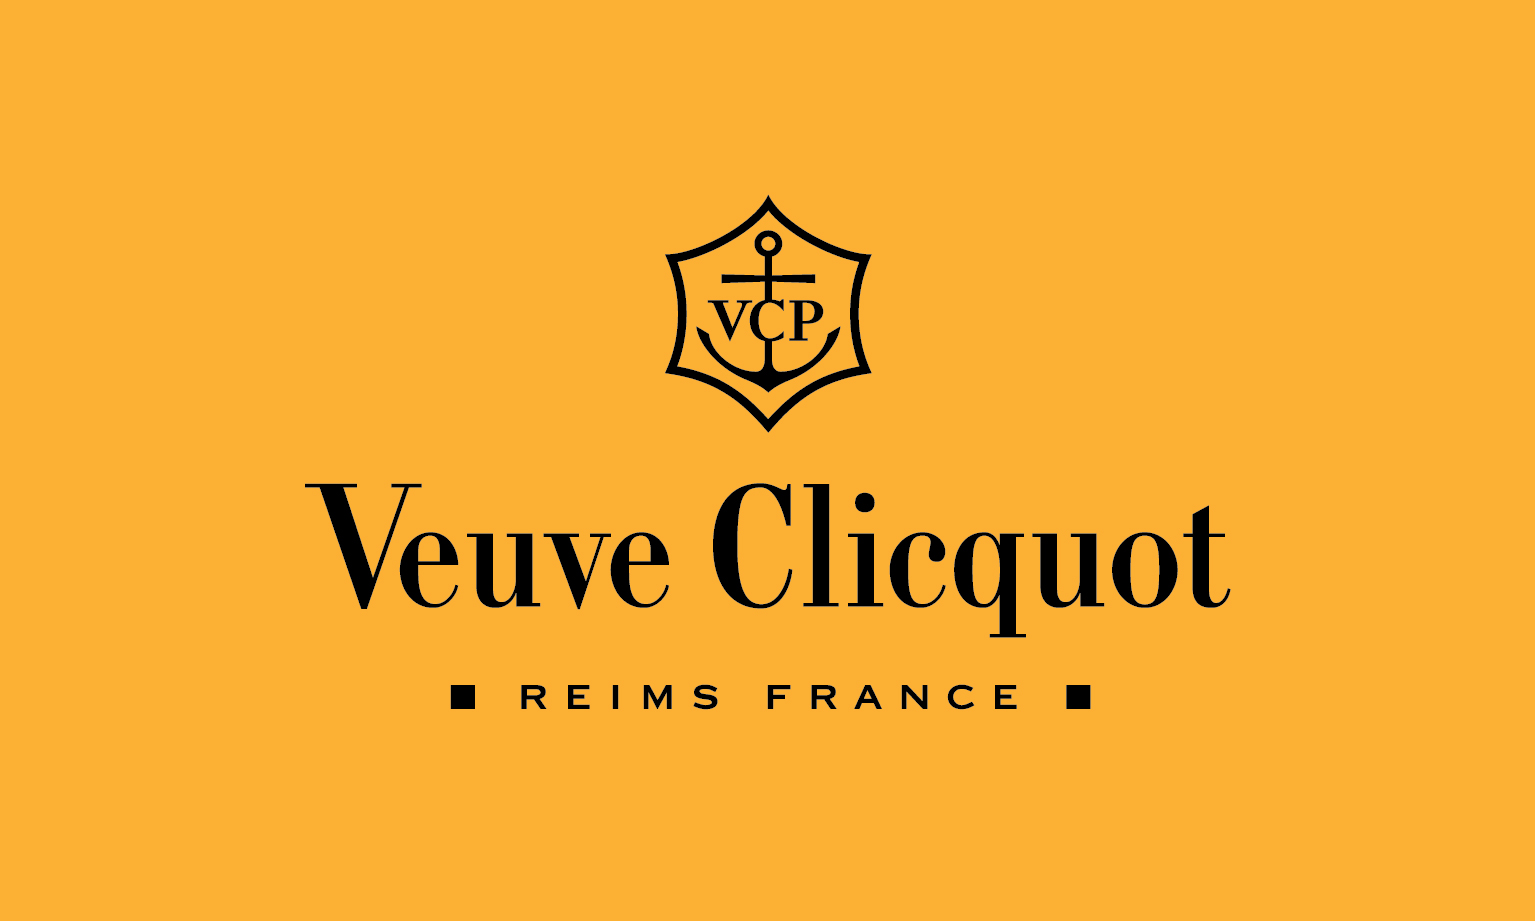 VEUVE CLICQUOT VERTICAL LOGO Yellow Background.jpg